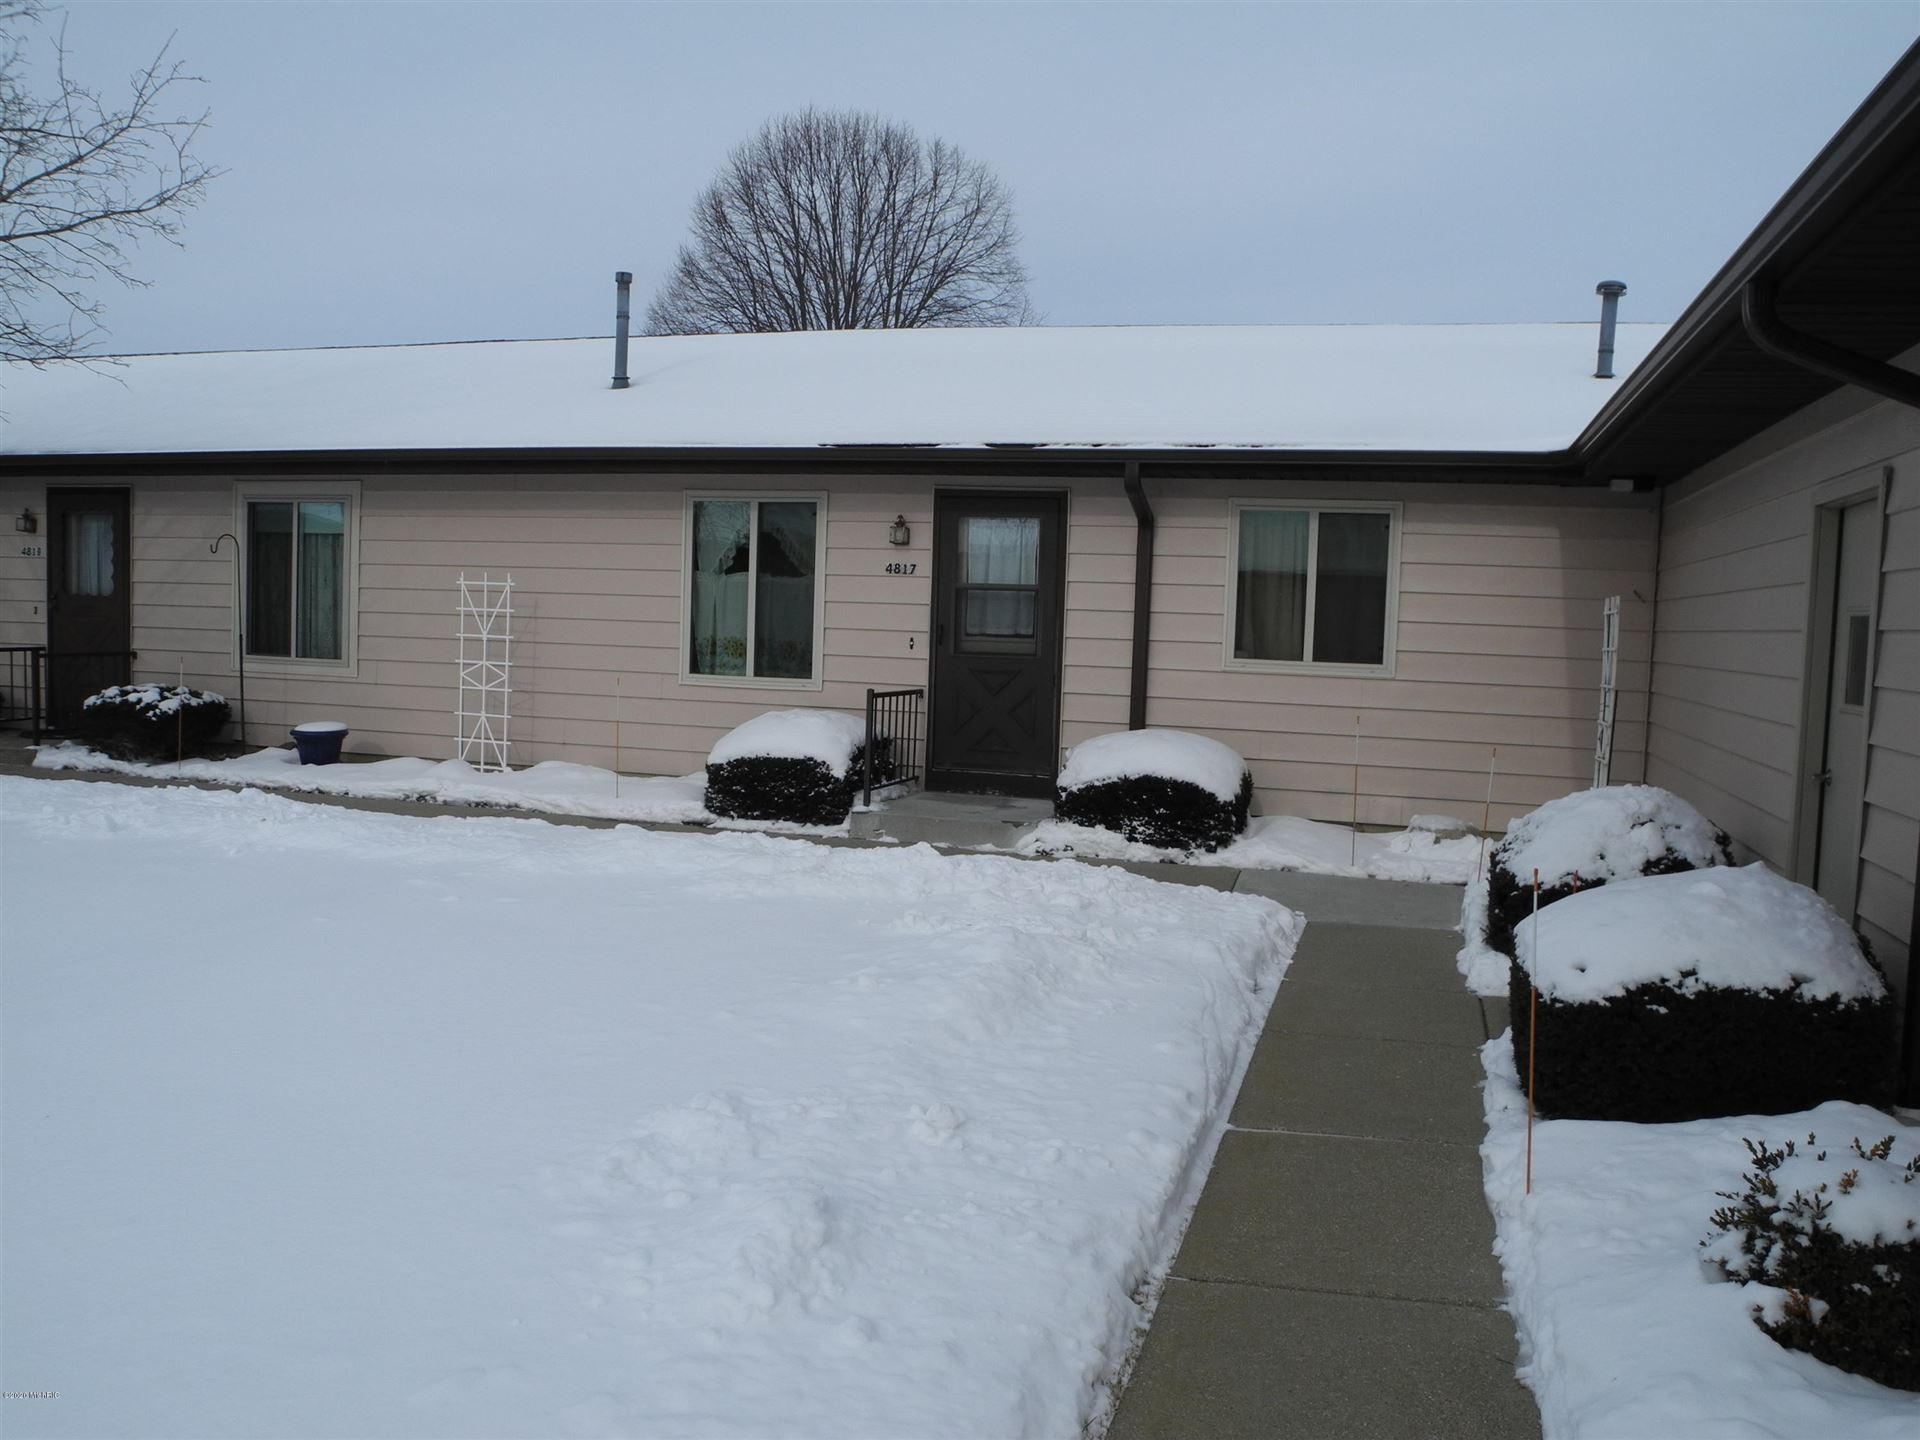 4817 Weston Avenue, Kalamazoo, MI 49006 - #: 20002546